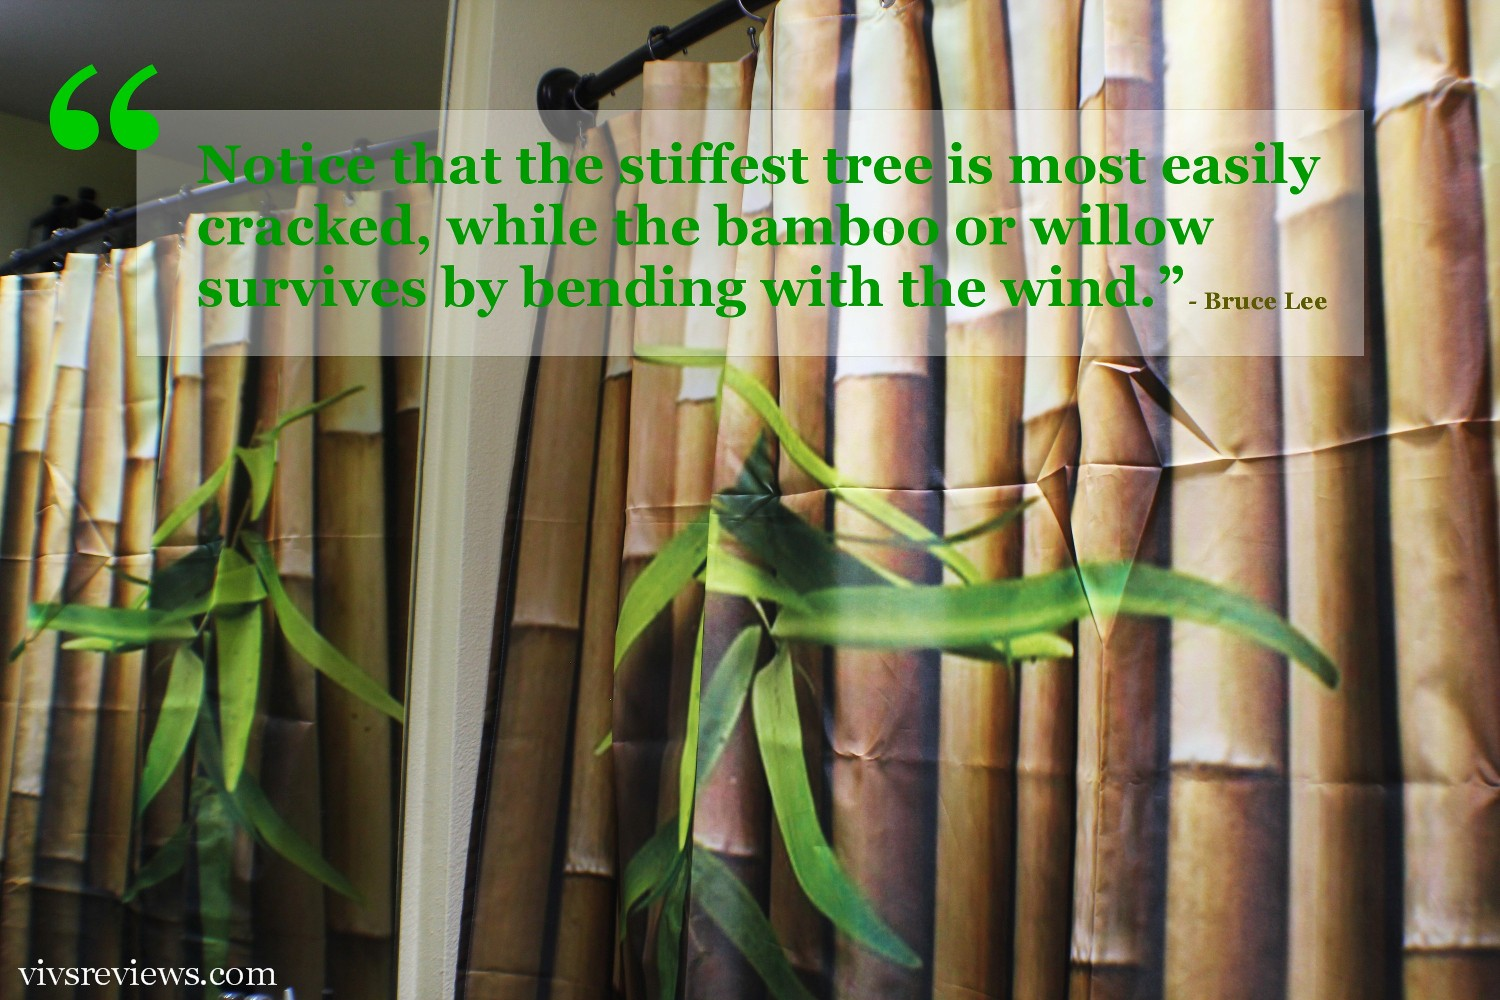 Bamboo shower curtain - This Bamboo Shower Curtain Adds That Nice Asian Feel And Element Of Relaxation To My Bathroom This Goes Well With The Bamboo Accessories